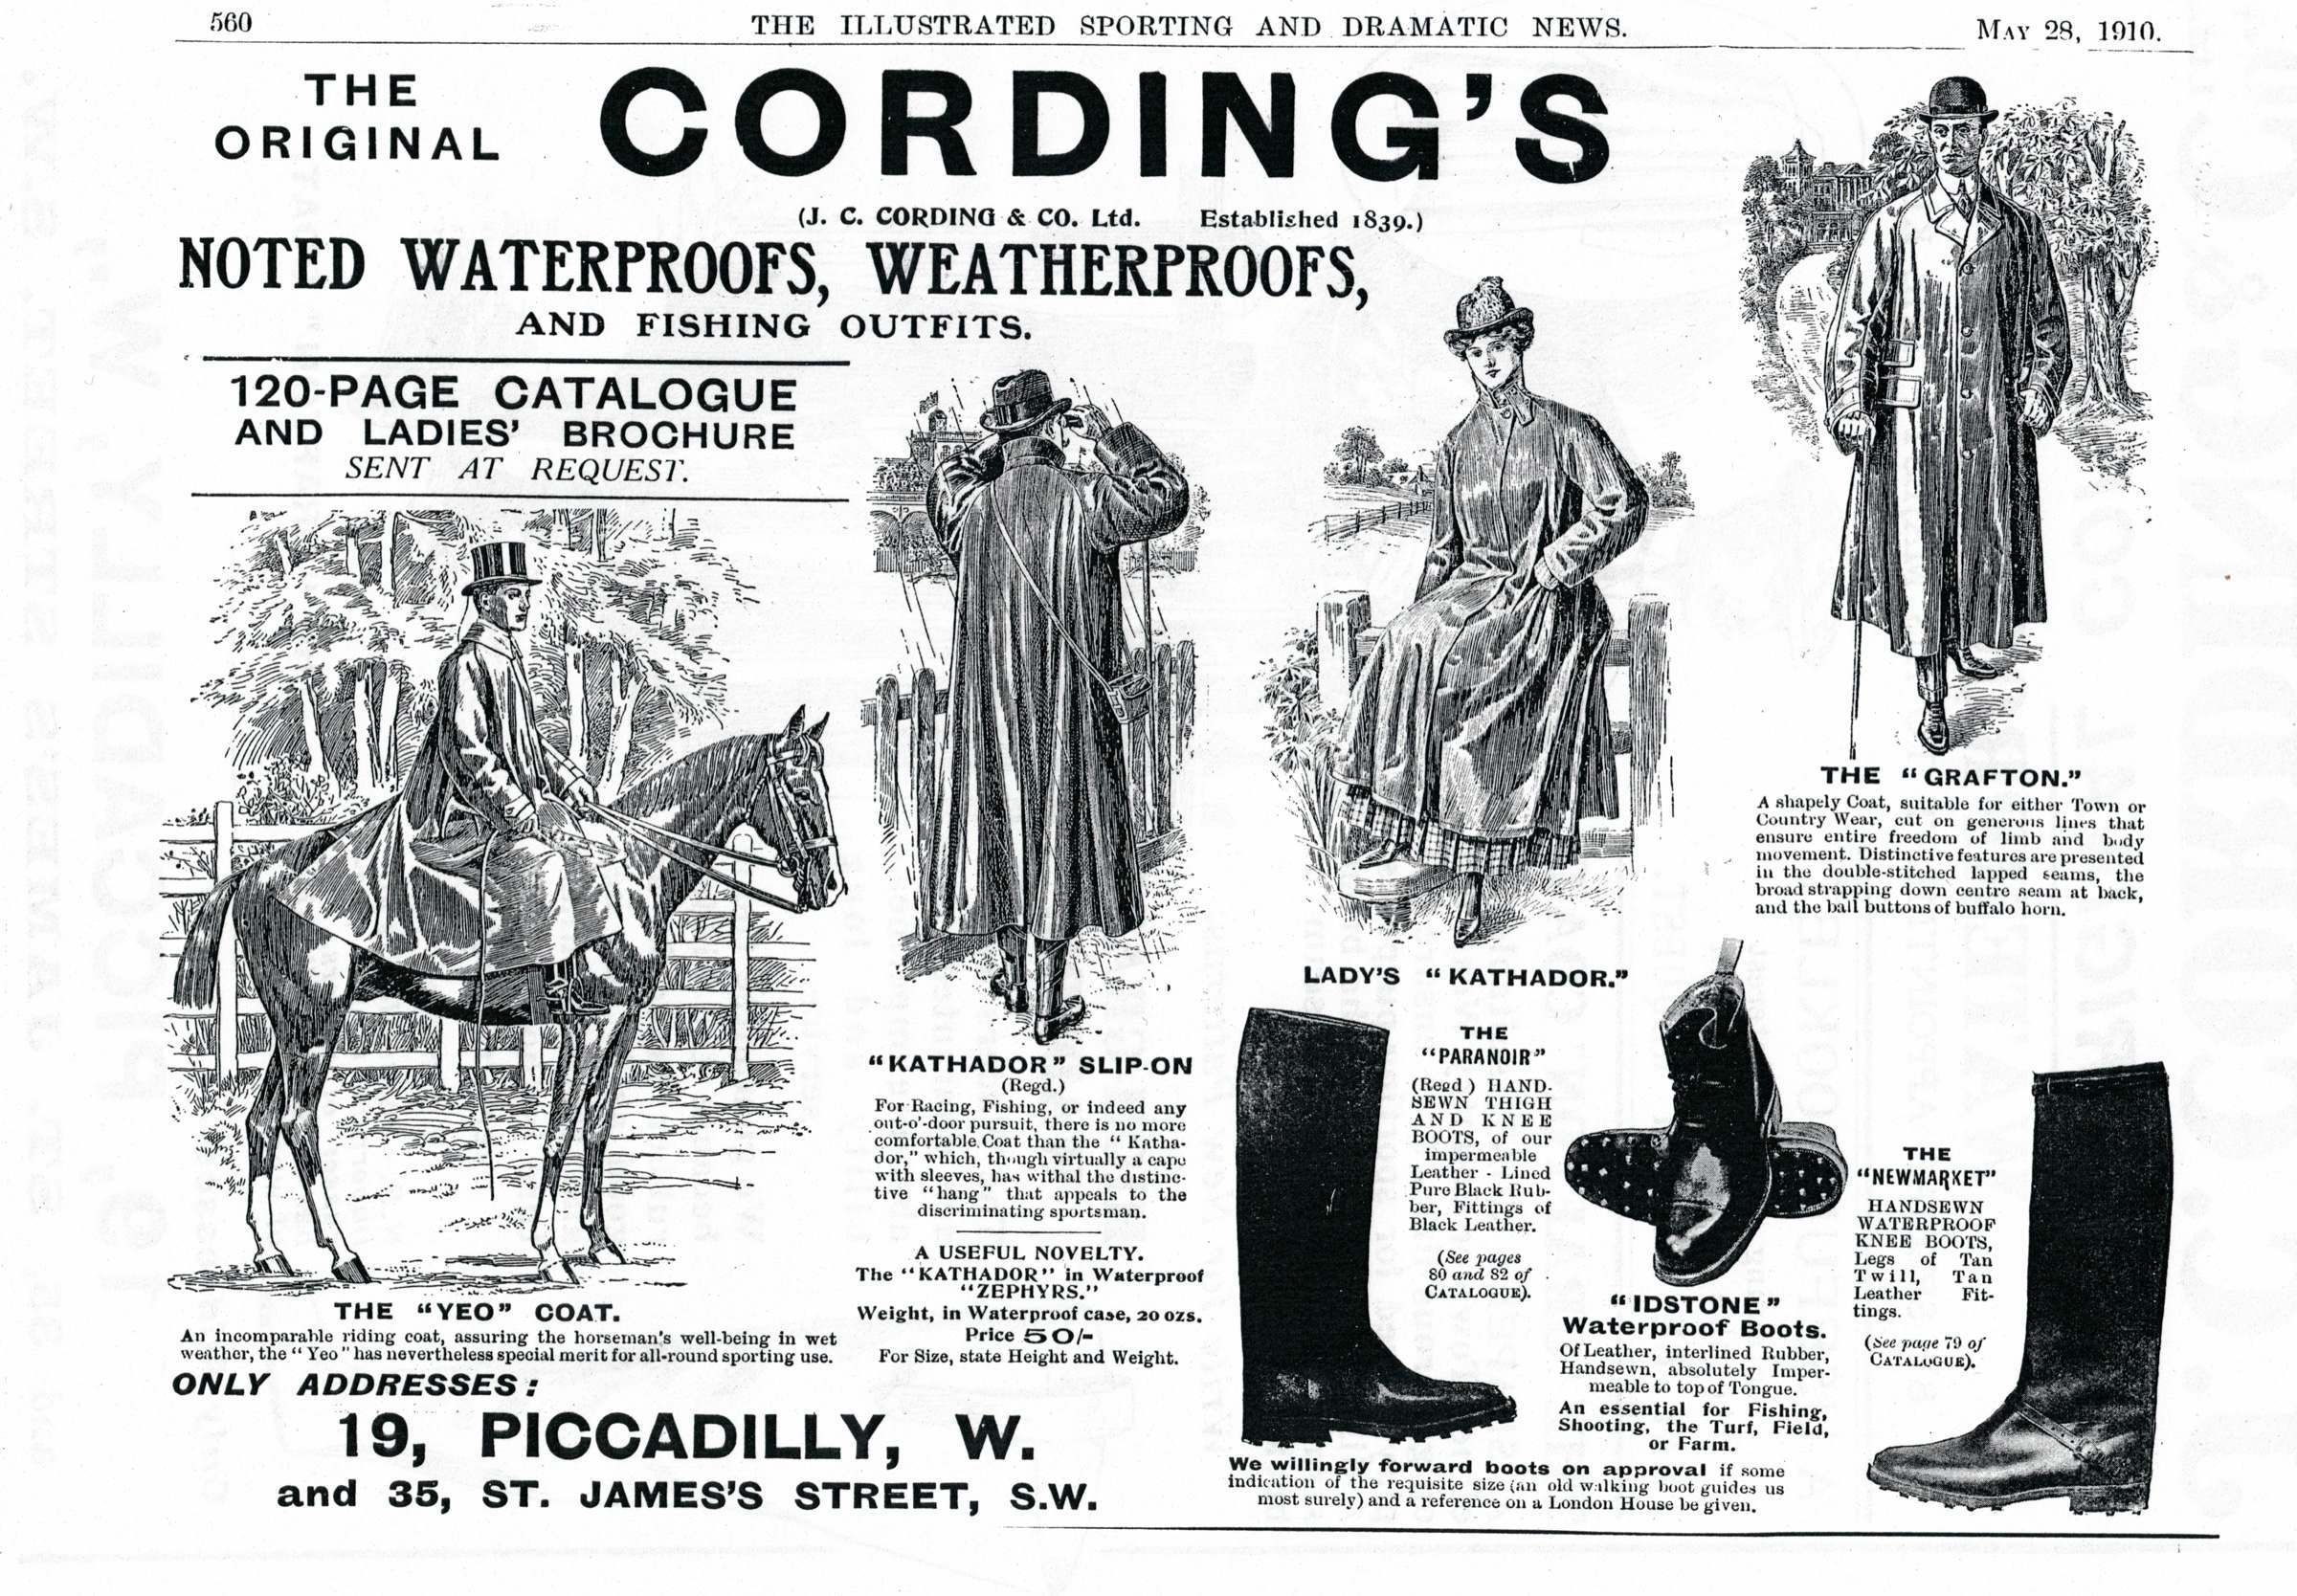 Early Cordings Advert showing the Newmarket boots